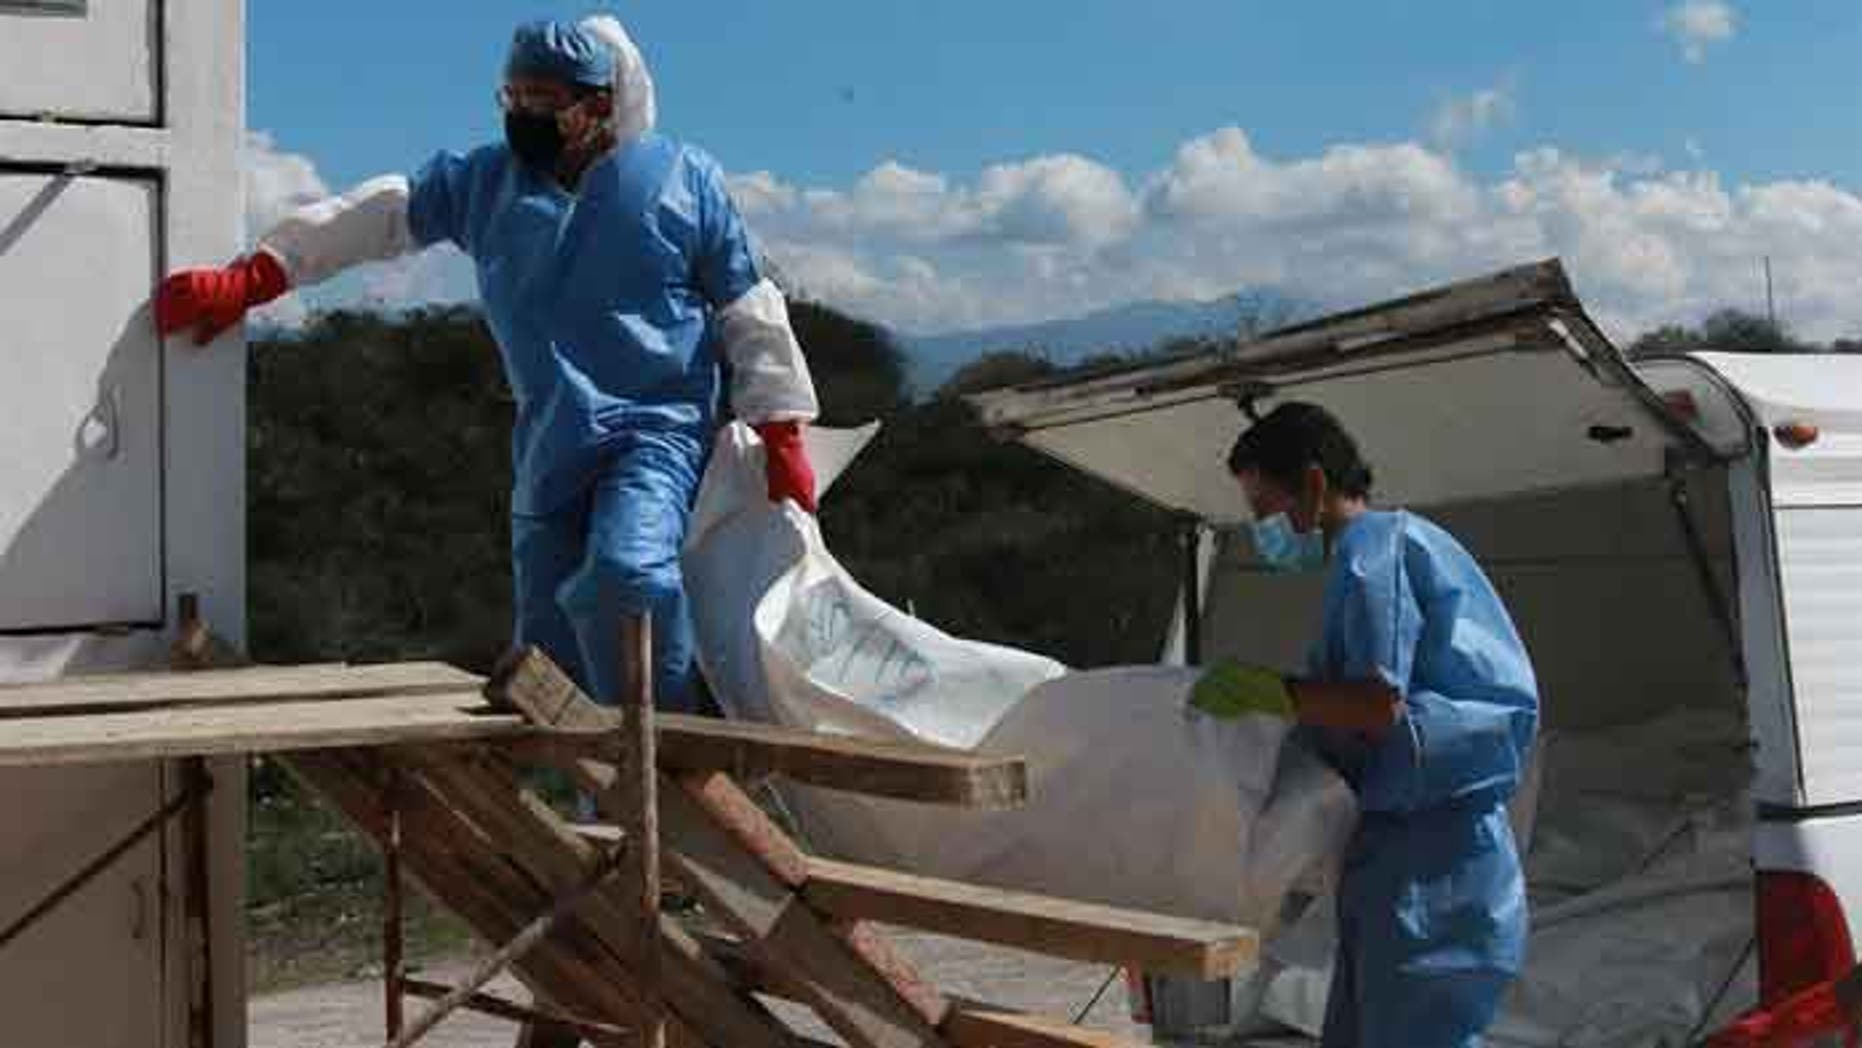 Coroner's office employees move the first of 460 bodies into the state morgue in Chilpancingo on Dec. 6, 2016.